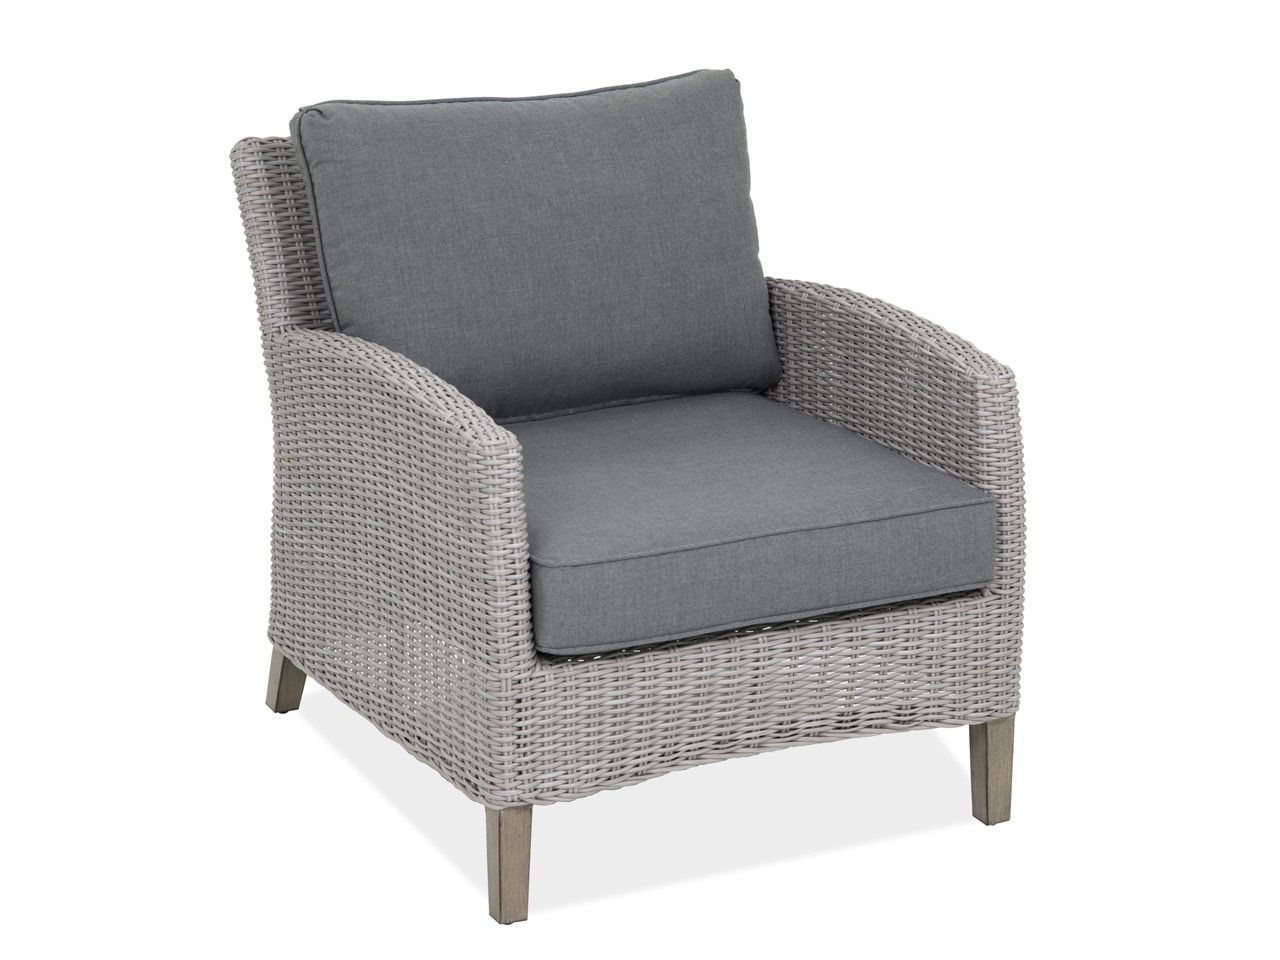 Br Div Class Availdate Available On 06 15 2019 Div In 2020 Patio Lounge Chairs Outdoor Wicker Cushions On Sofa